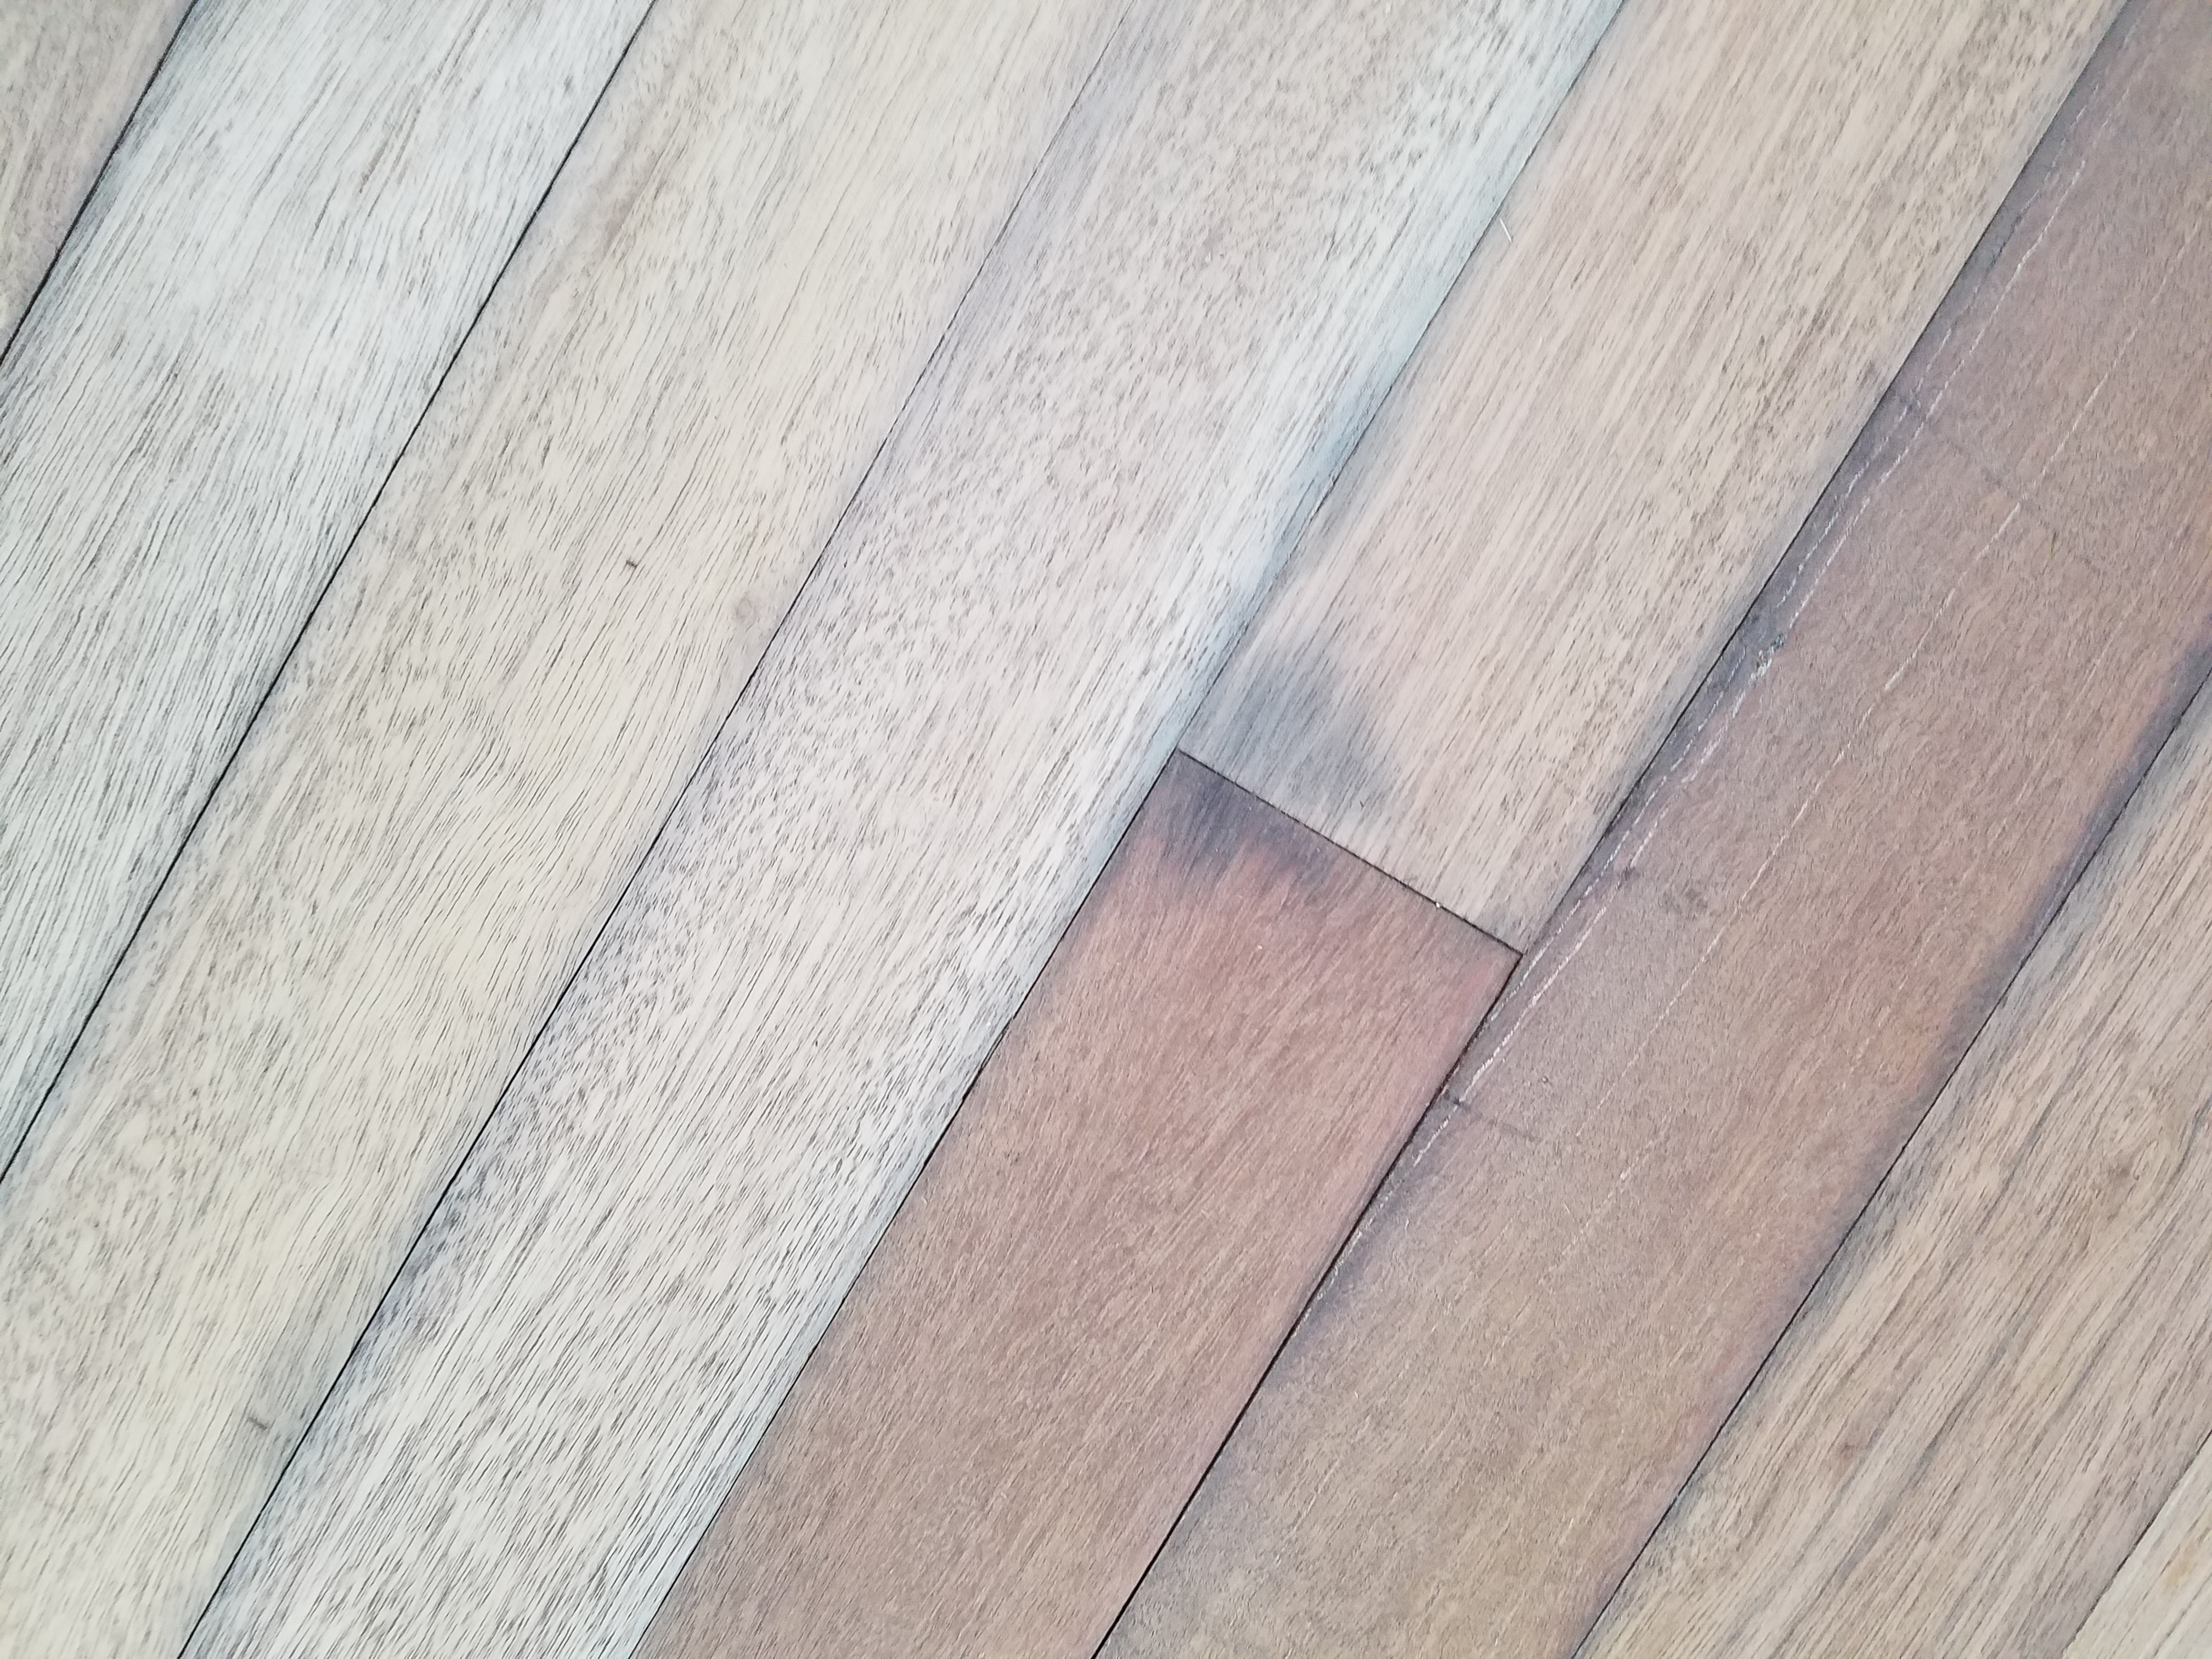 Black Spots On Mahogany Porch Deck Cleaning Questions